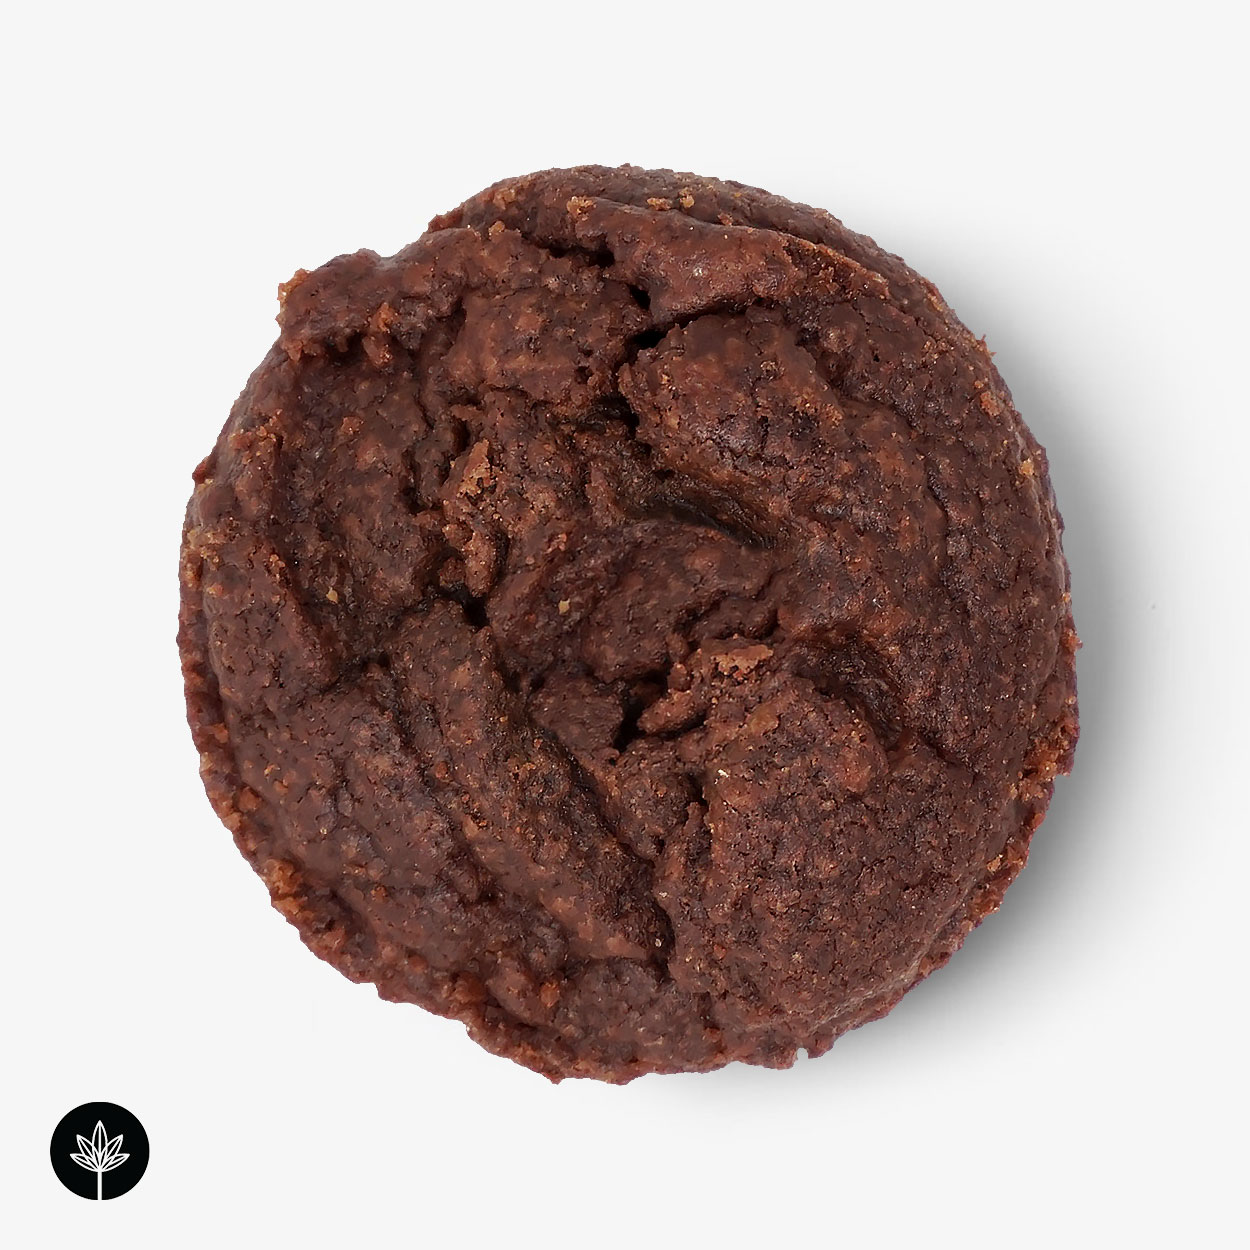 The VGF Double Chocolate Chip Cookie